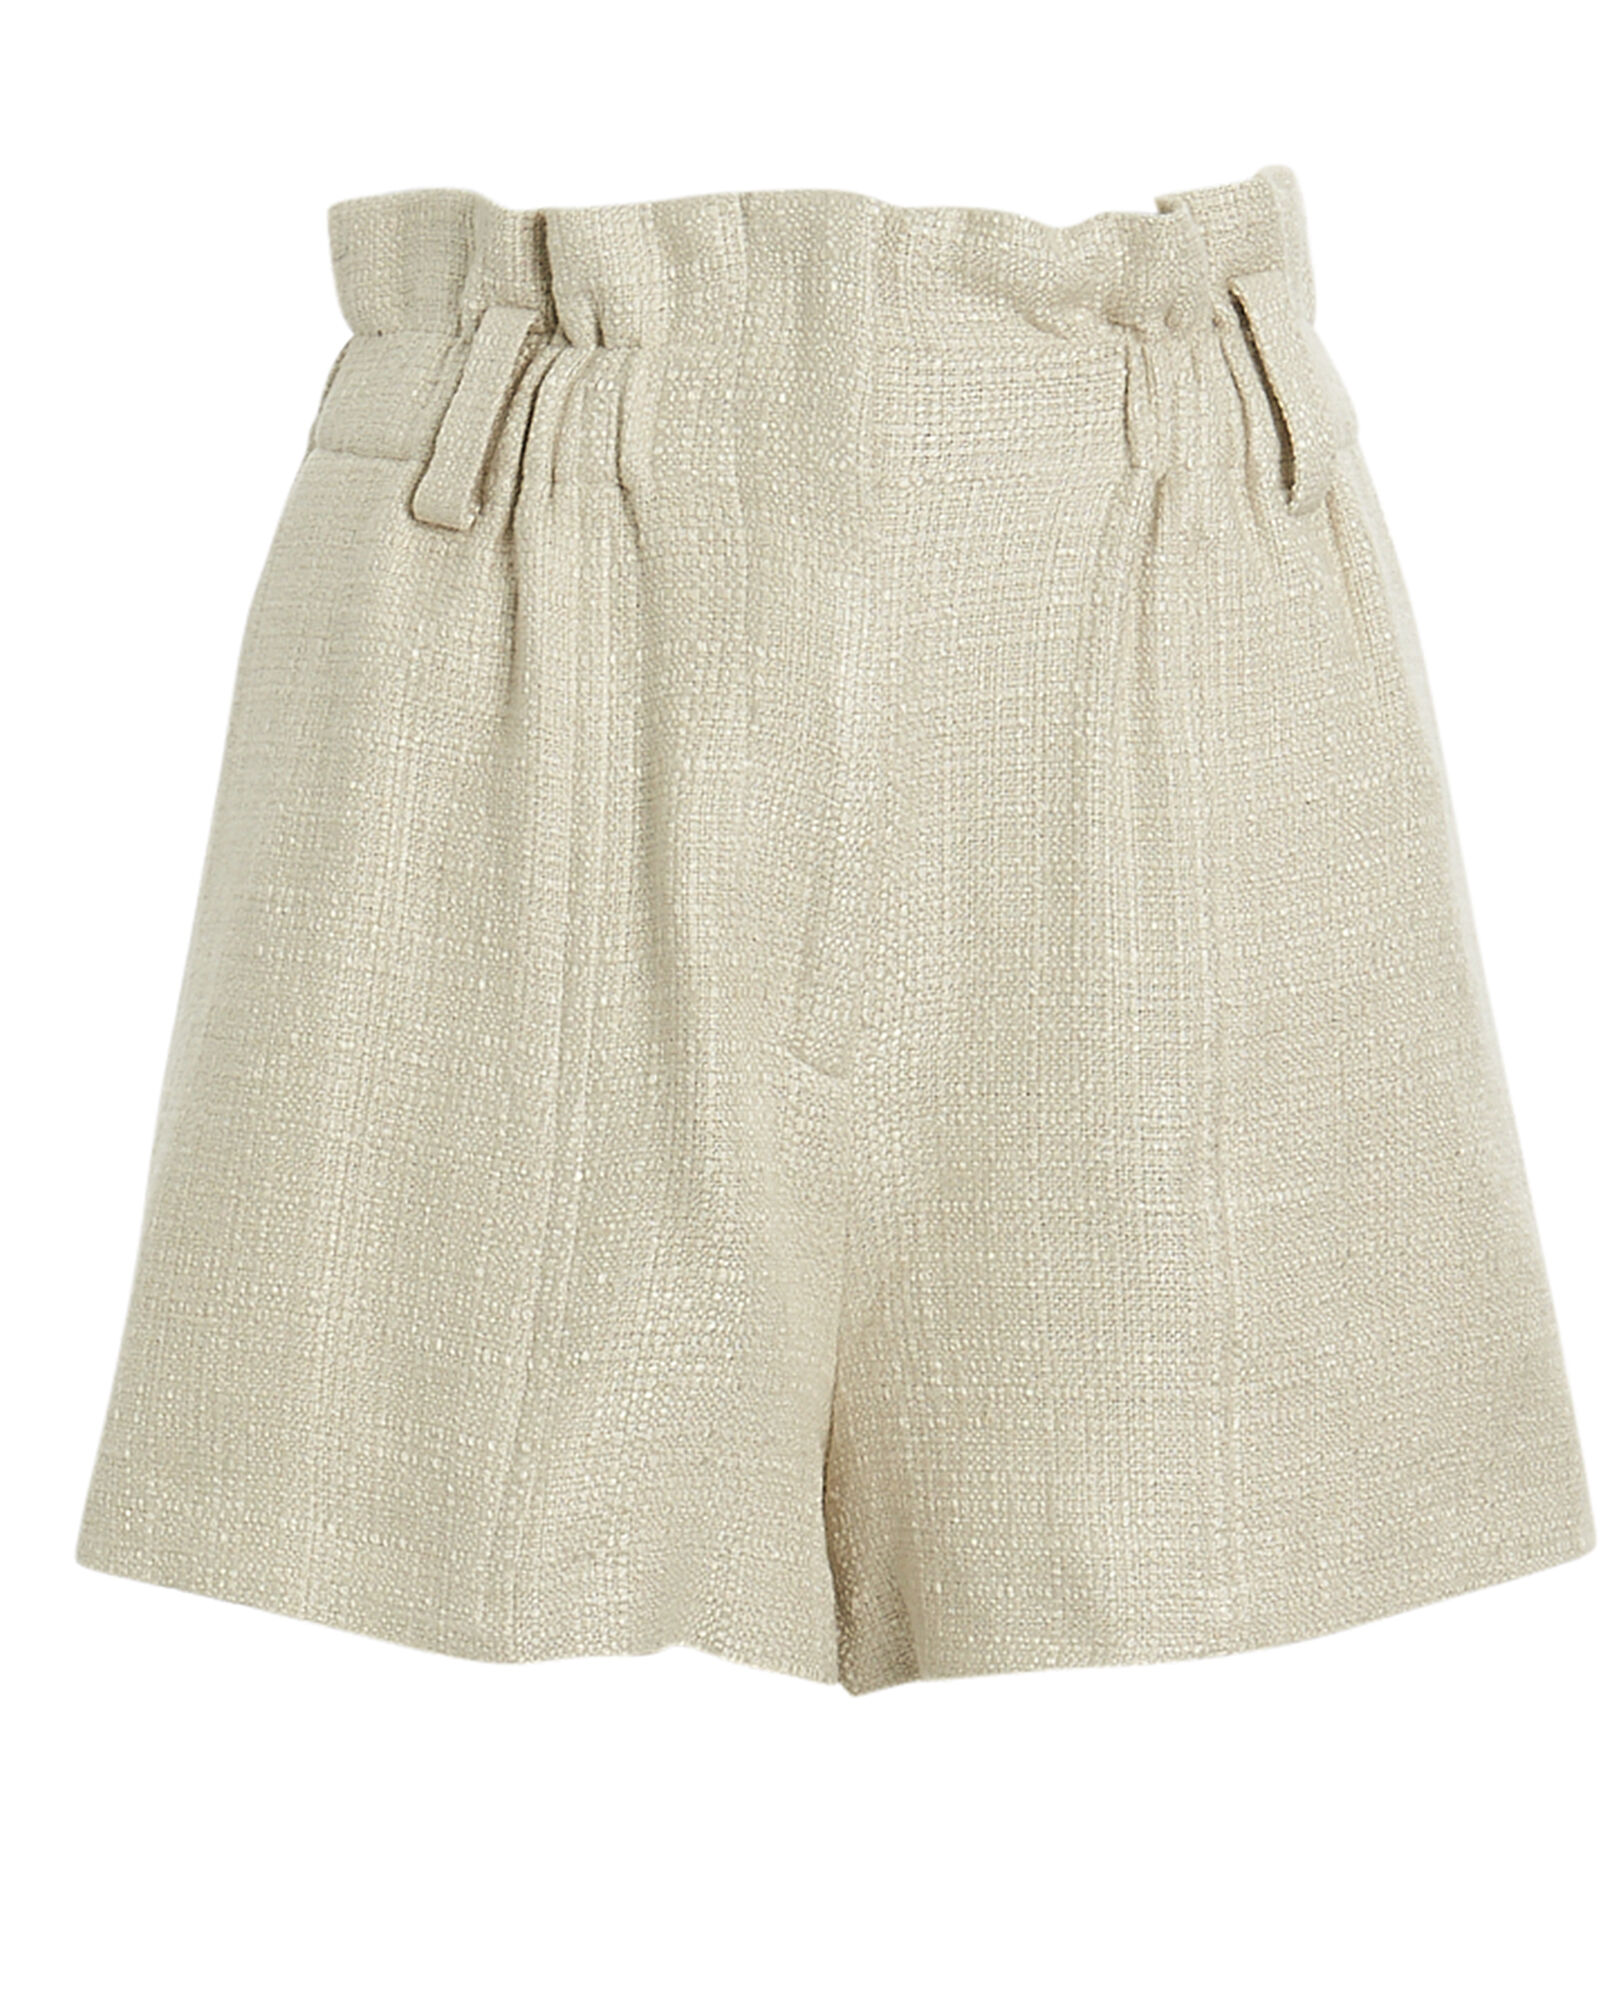 Asty High-Waist Shorts, IVORY, hi-res